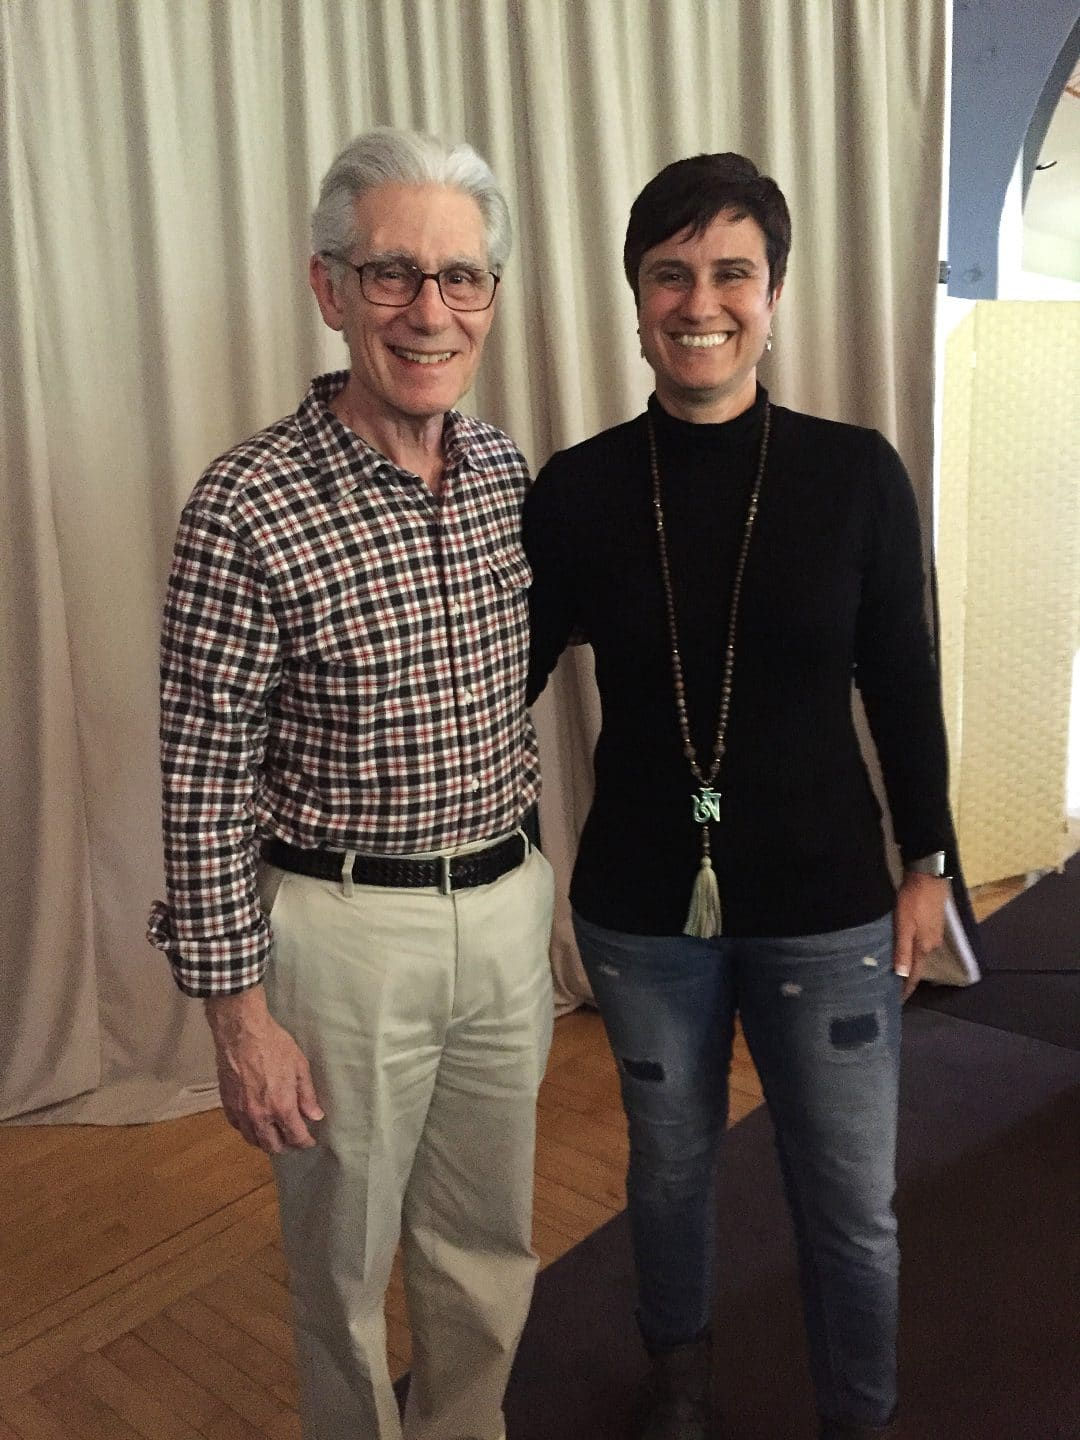 Professional training with Dr Brian Weiss in past life regression